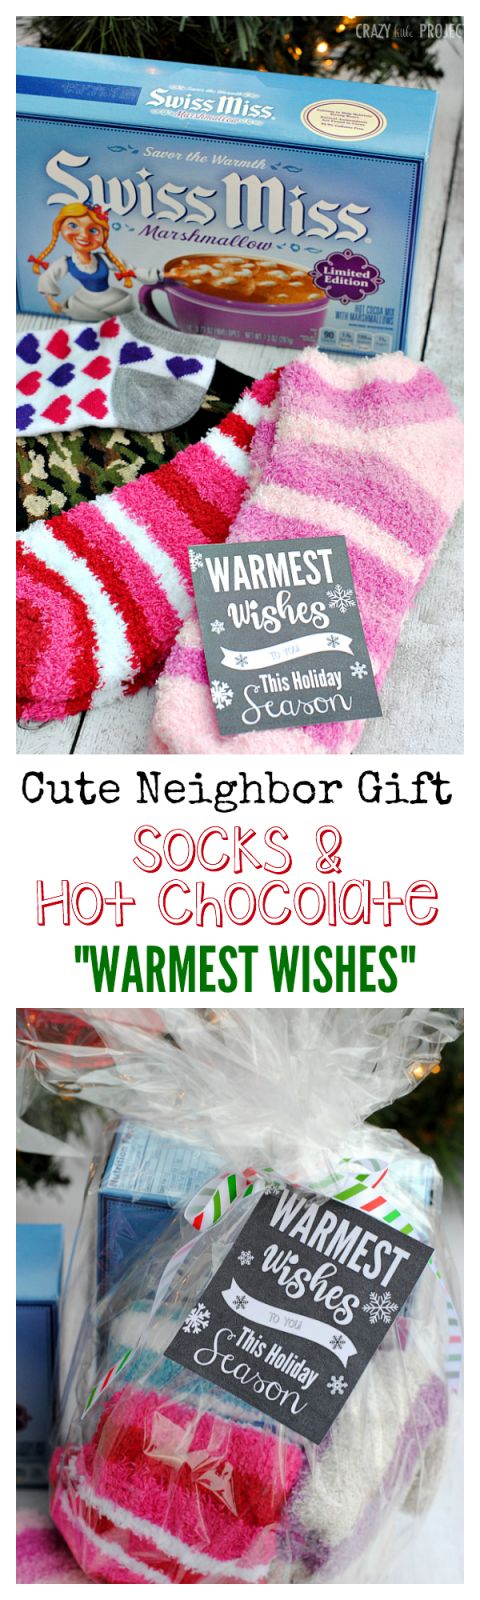 "Cute Neighbor Gift Idea! Warm fuzzy socks and hot chocolate with ""Warmest Wishes"" tag"